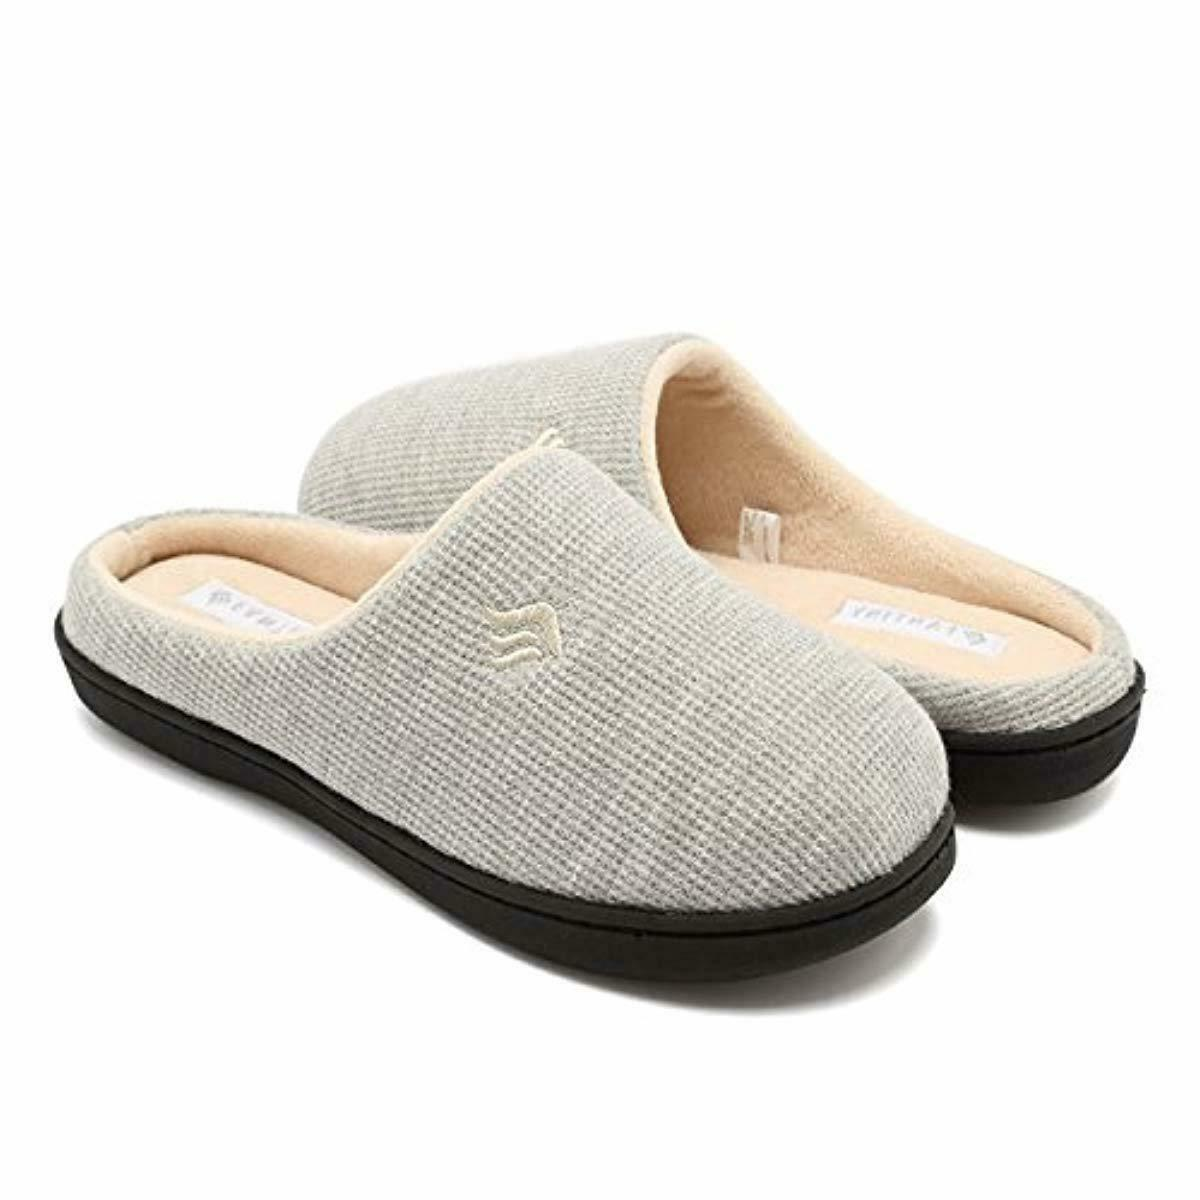 womens memory foam slippers slip on clog